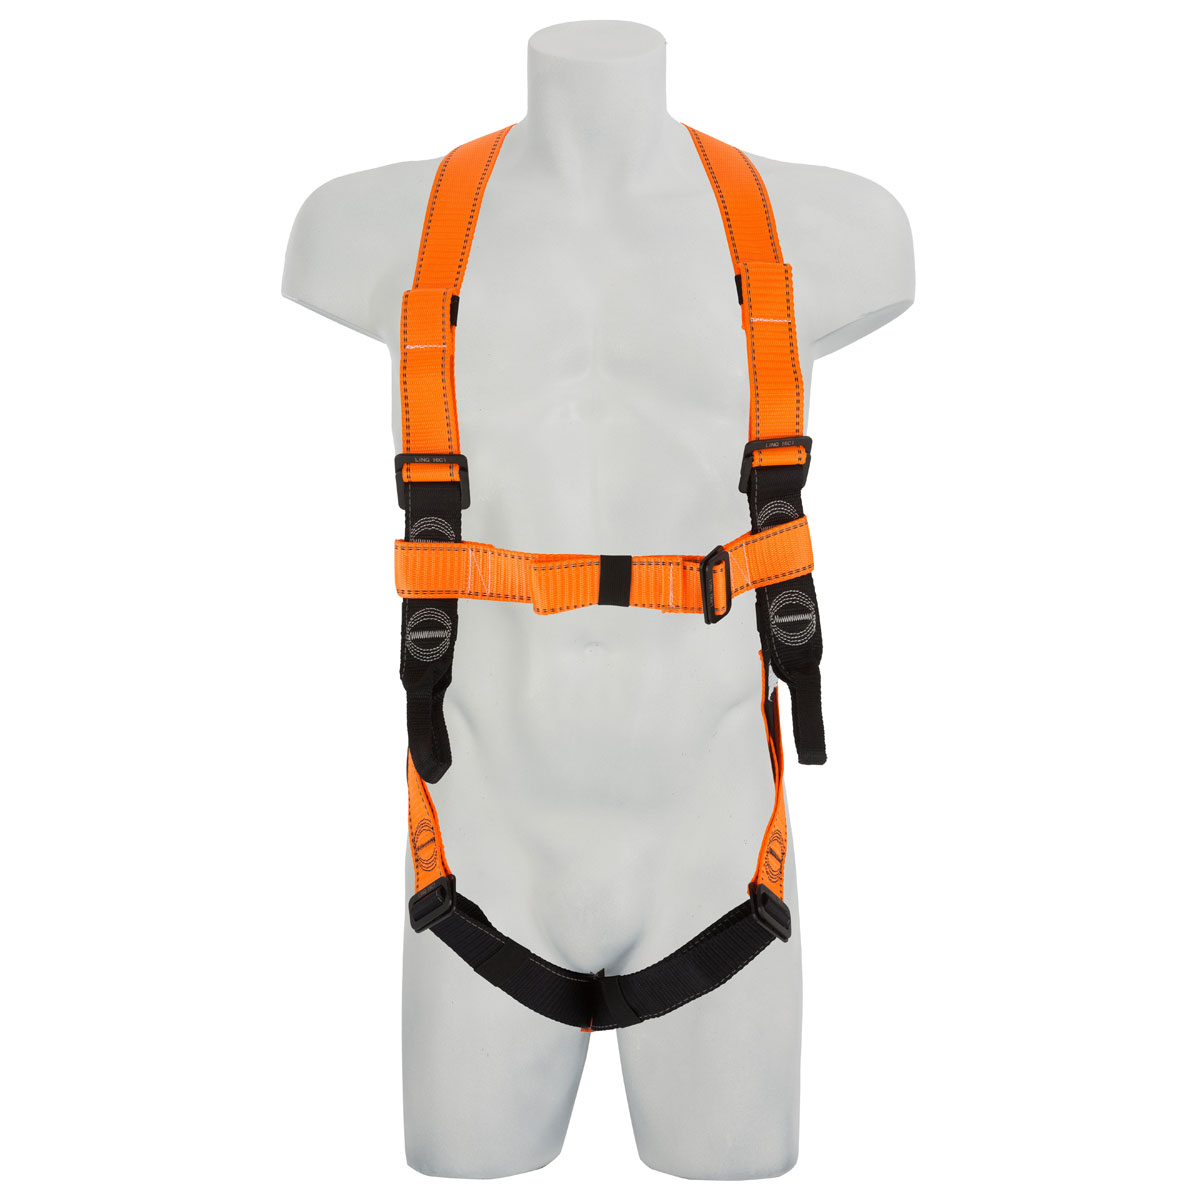 Harness - LinQ Essential c/w Dorsal D Ring & Front Belay Loops - M/L